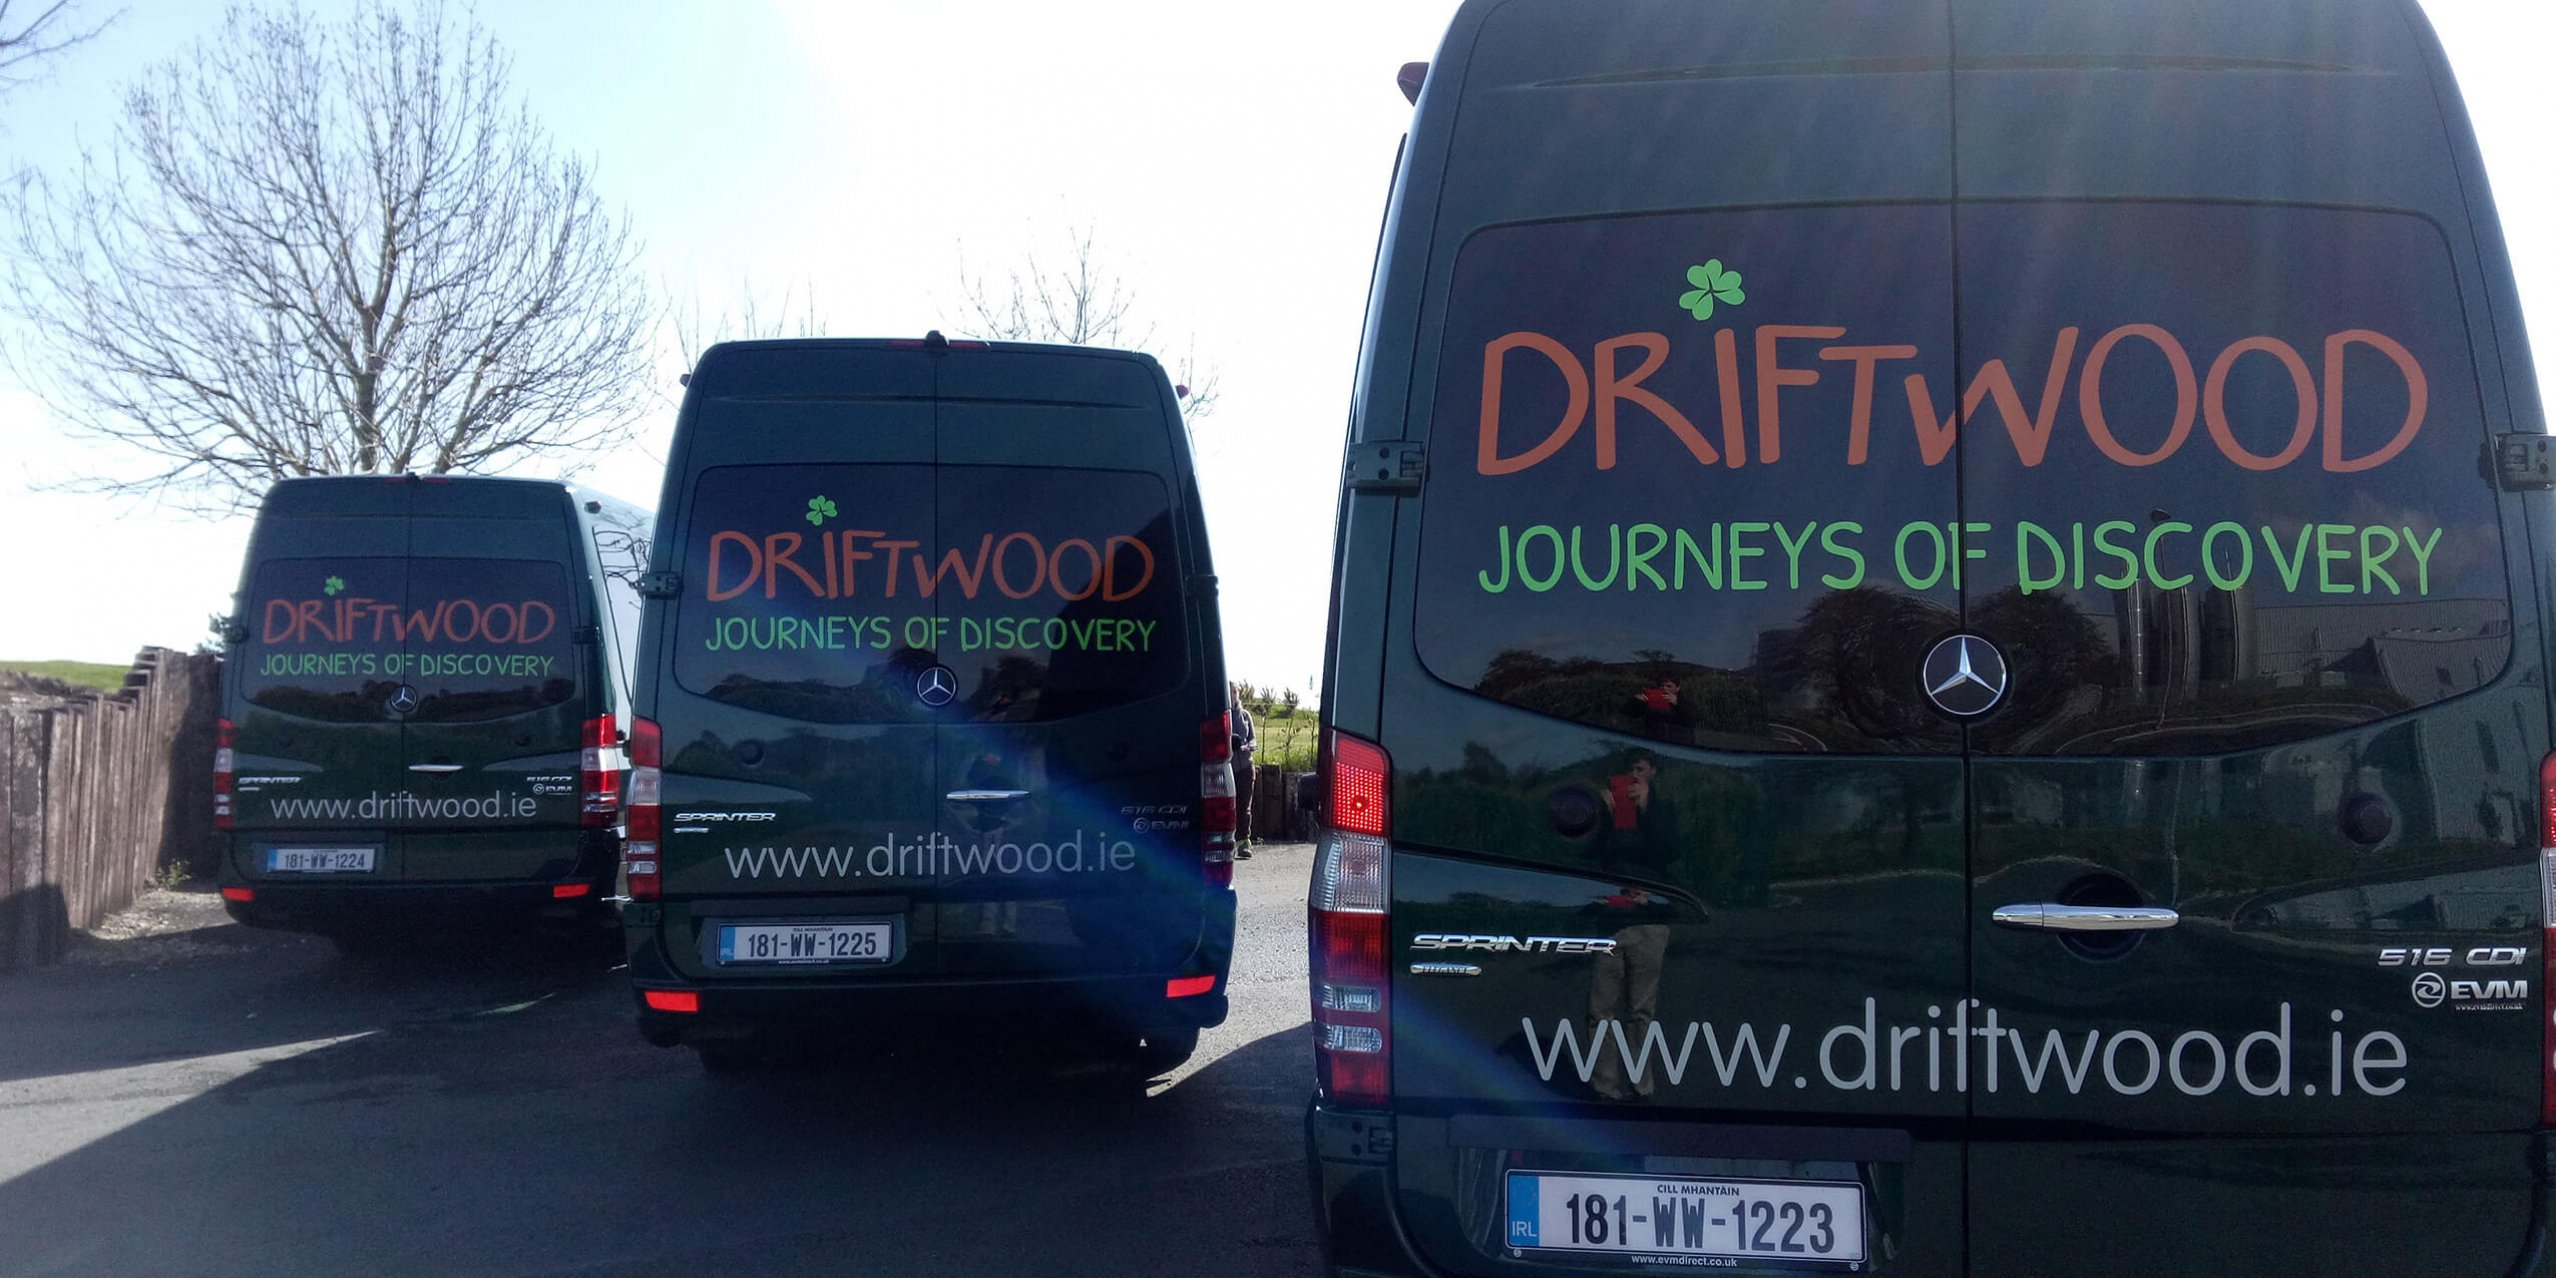 driftwood vehicles ready to go